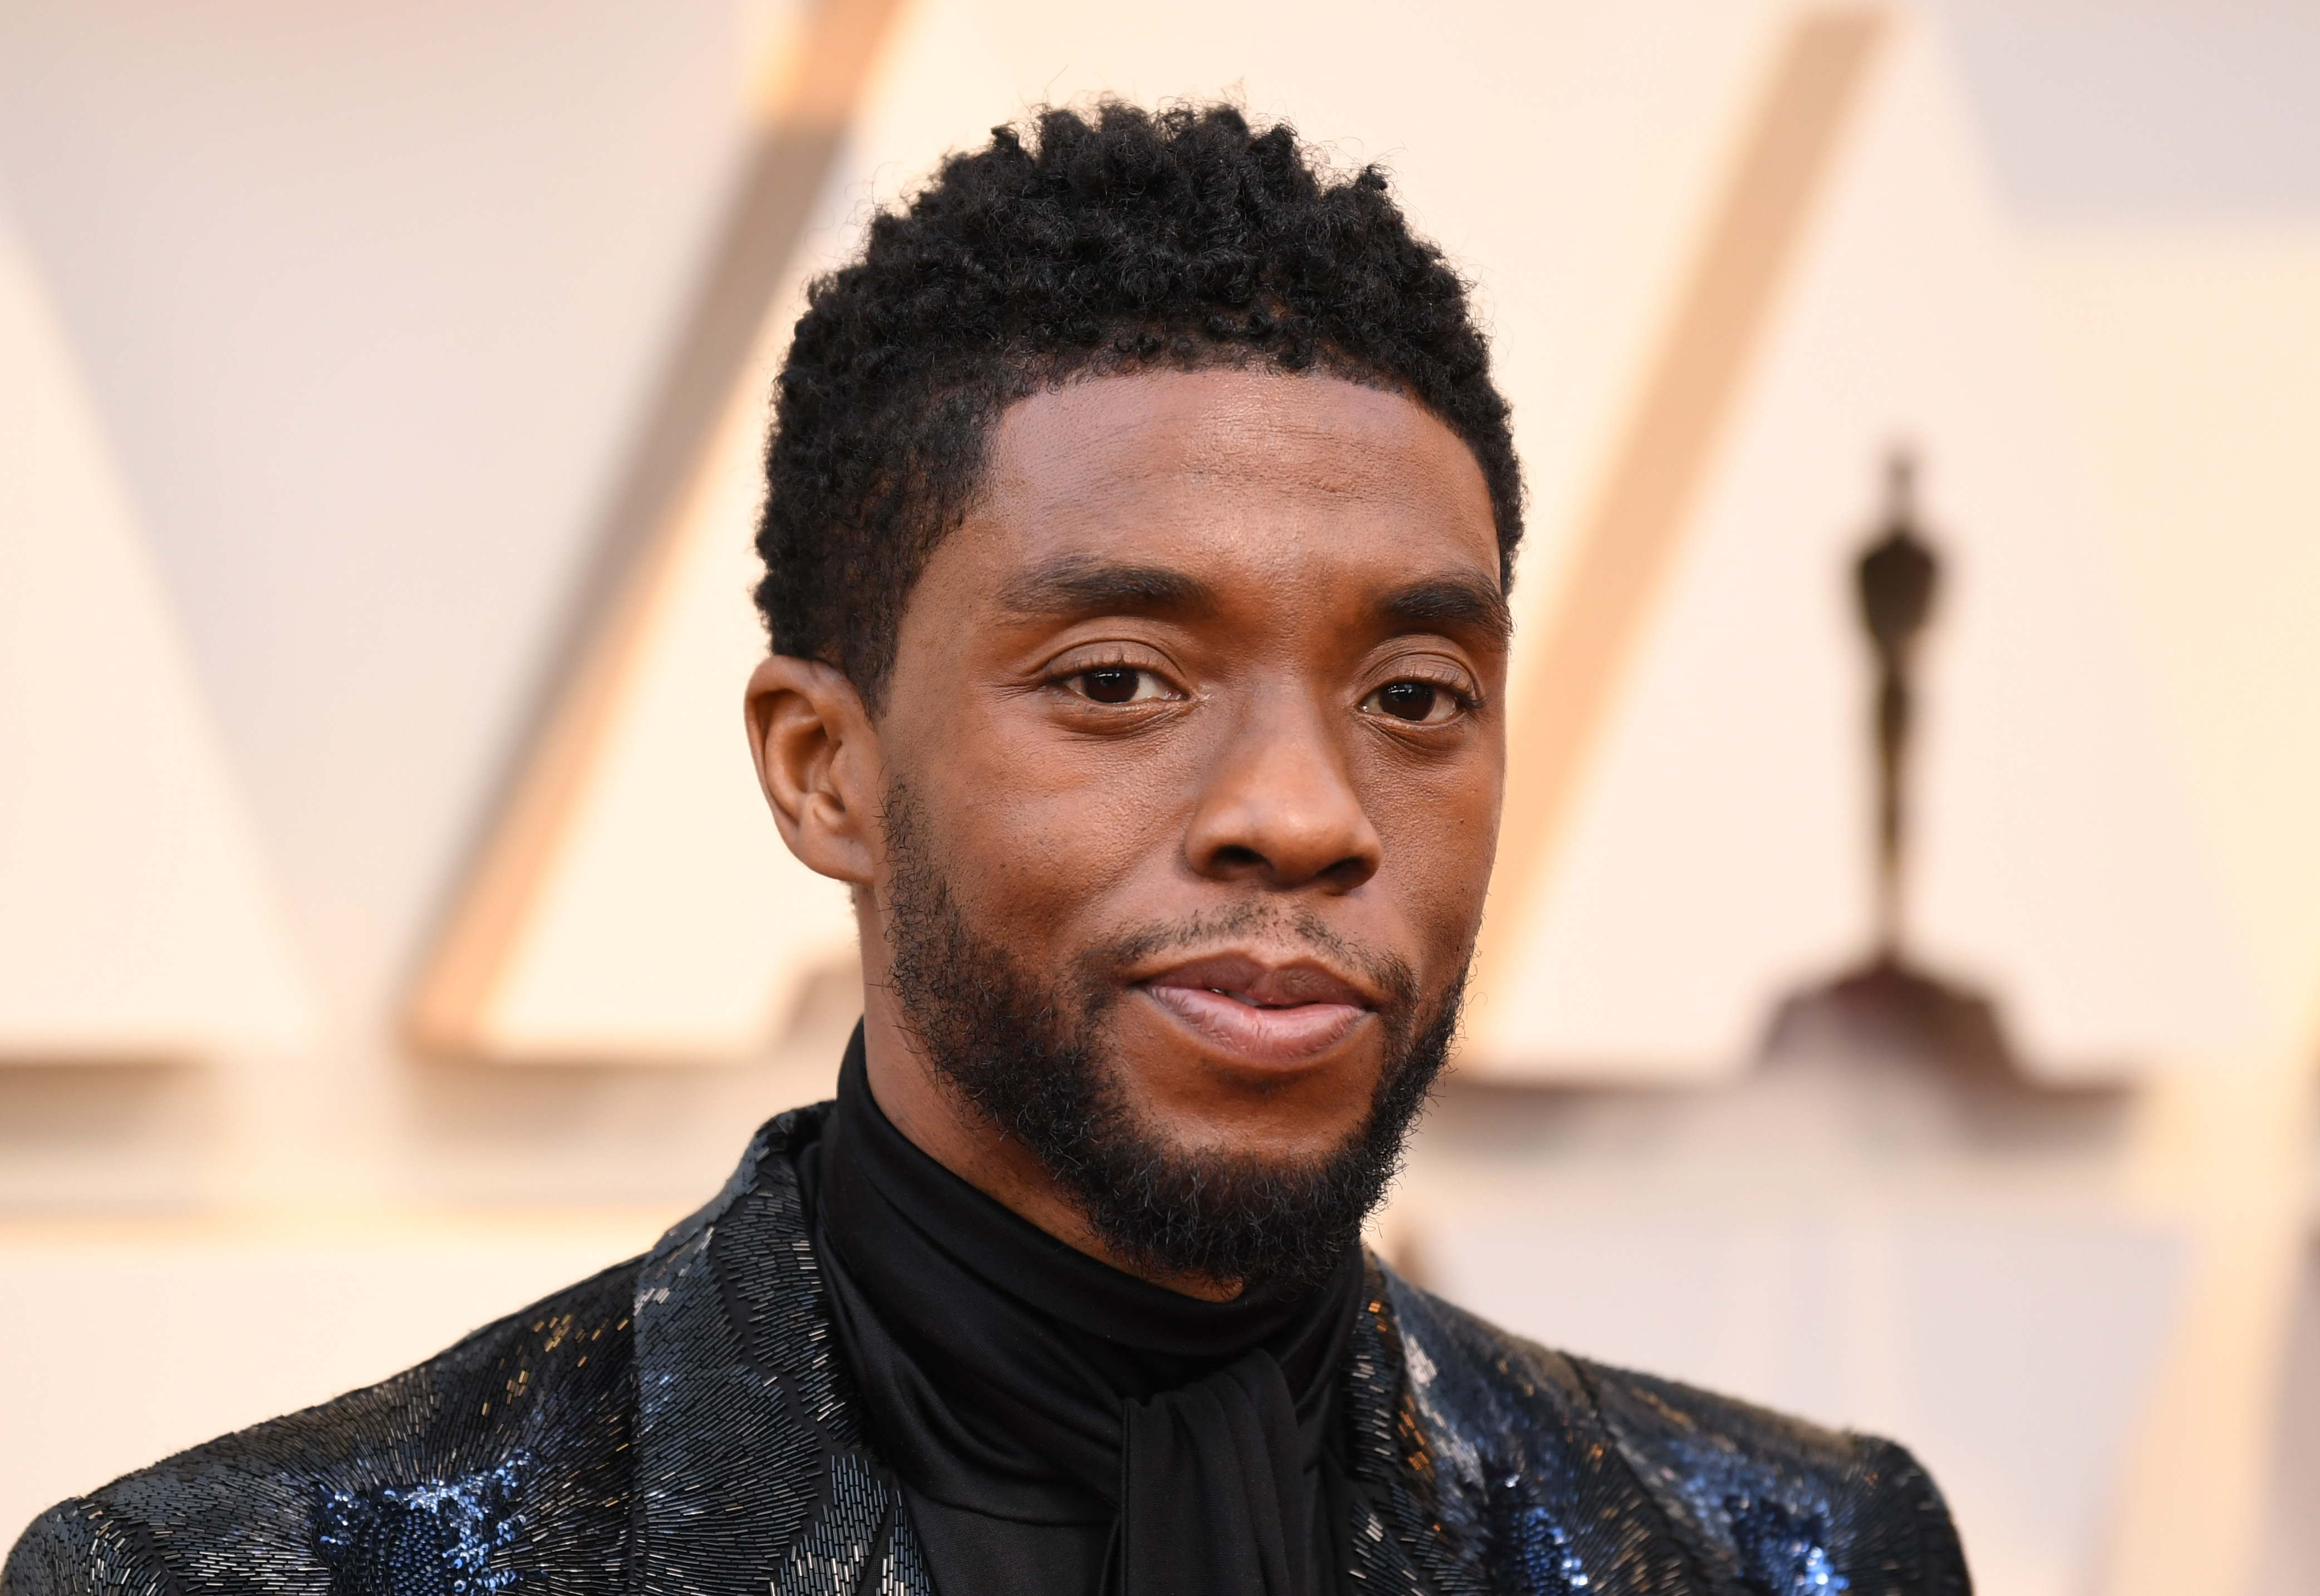 Chadwick Boseman Kevin Hart Top 50 Celebrities For Brand Endorsements